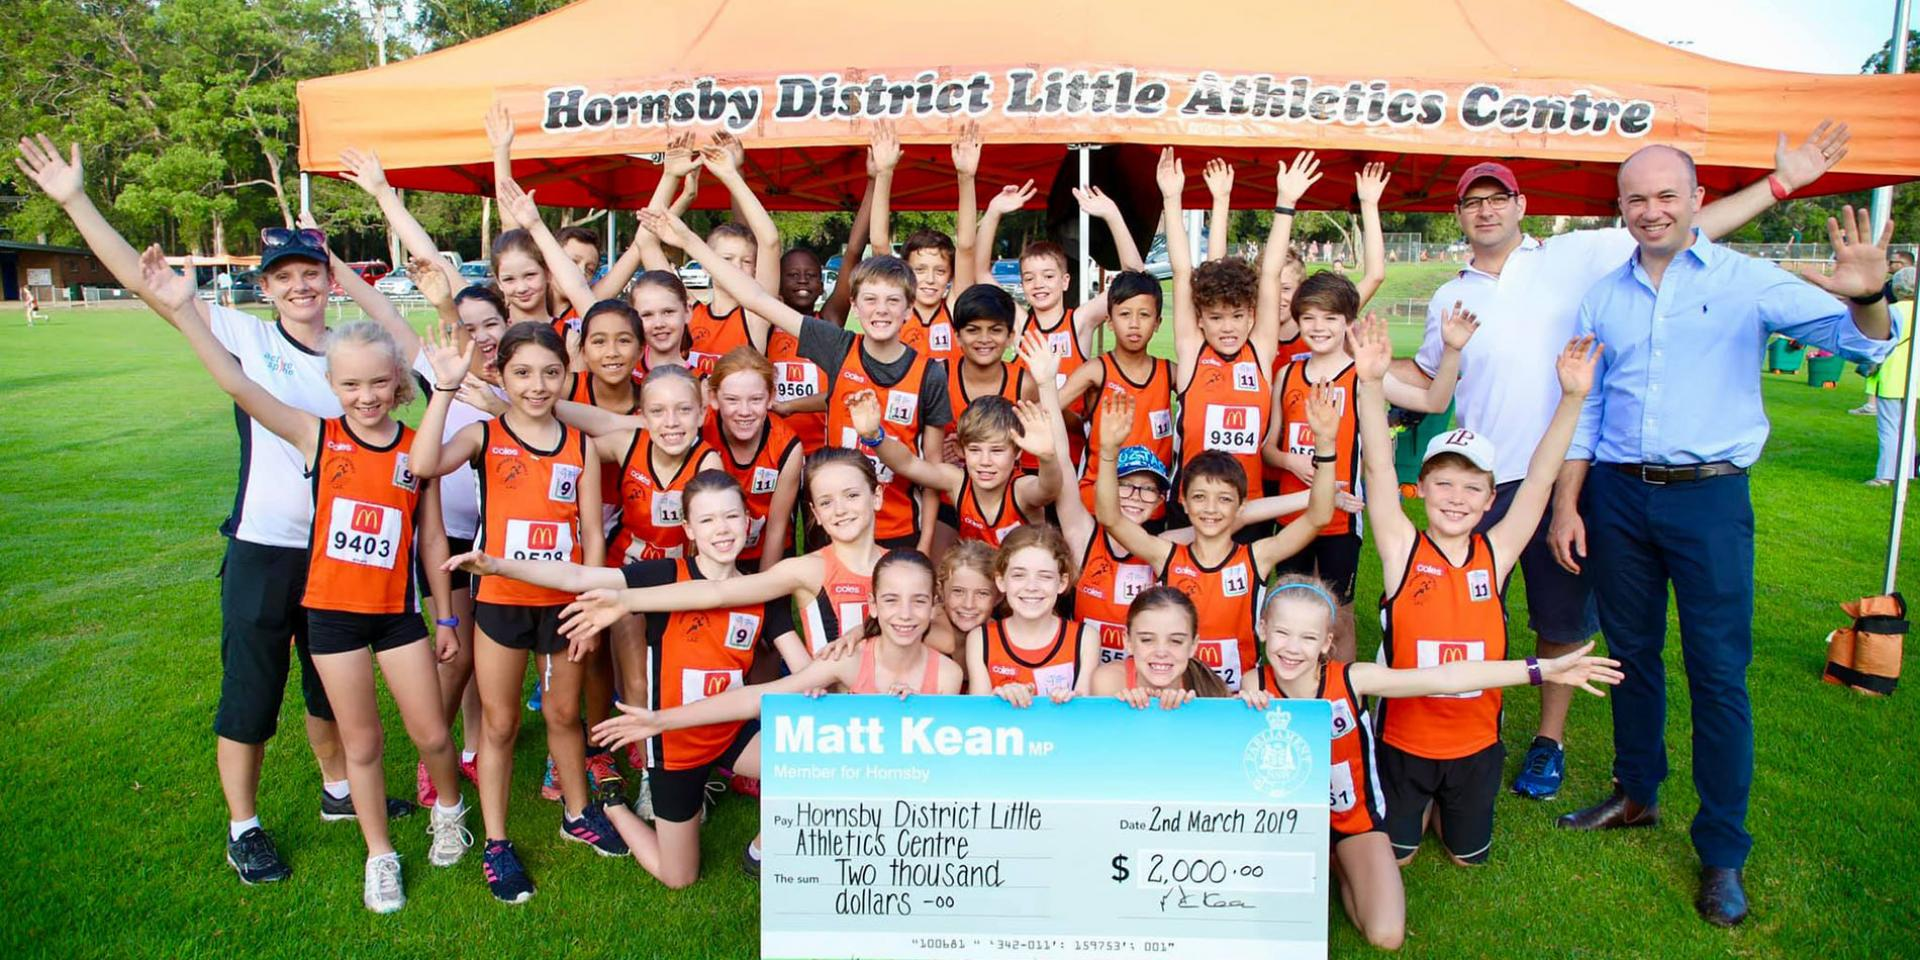 Hornsby District Little Athletics